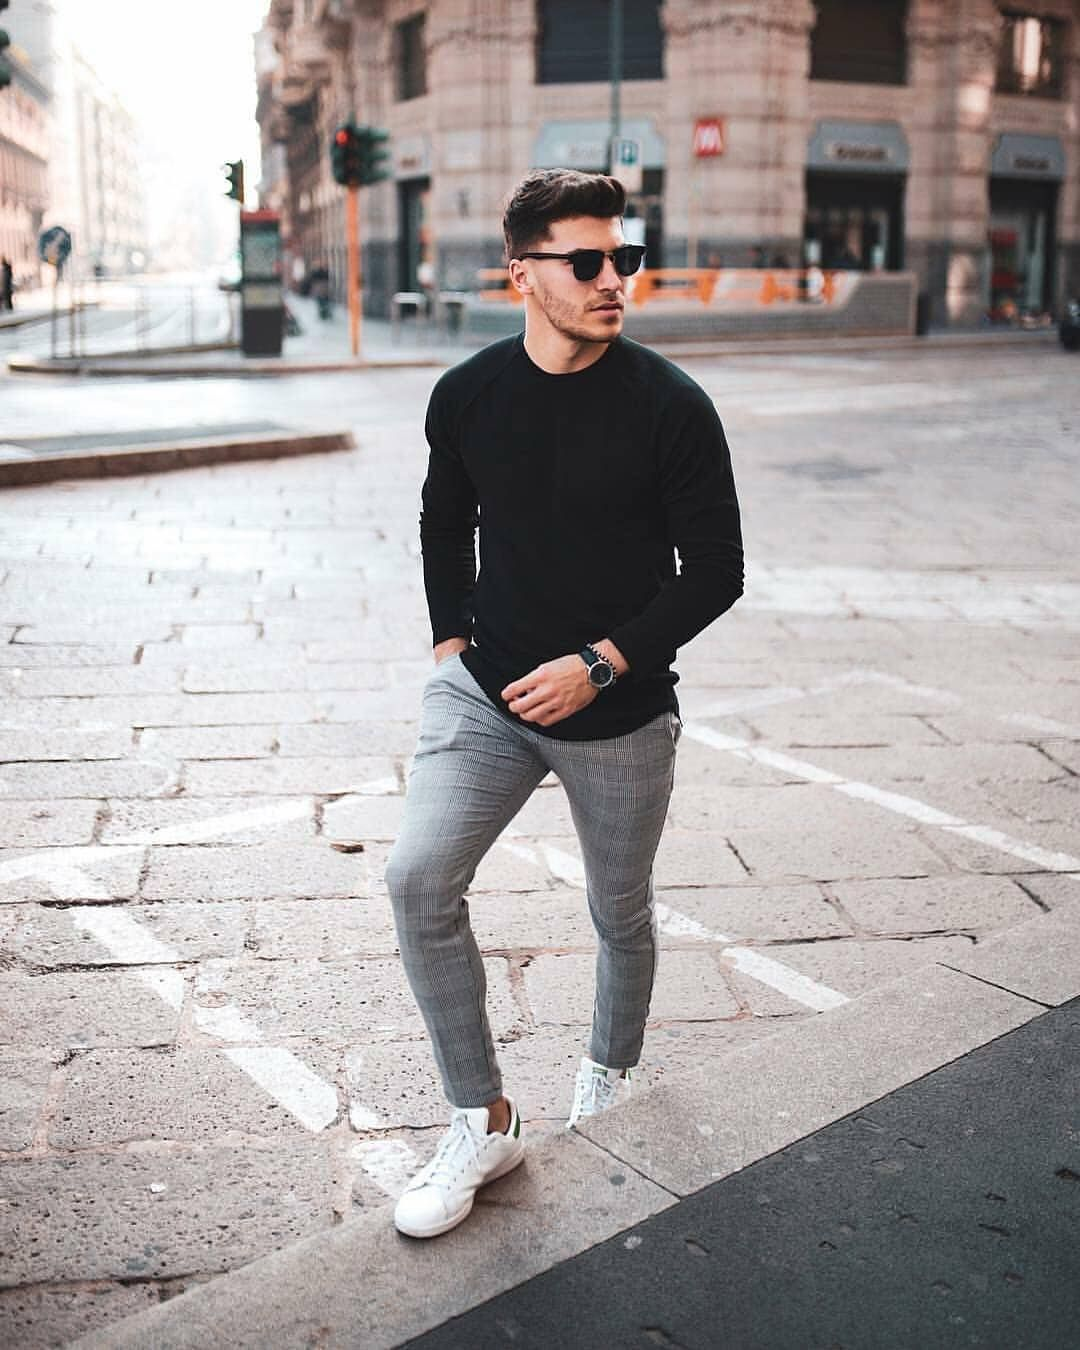 Streetstyle Gents On Instagram Via Picoji Com 8 2k Likes 48 Comments Mens Casual Outfits Summer Mens Casual Outfits Men Fashion Casual Outfits [ 1350 x 1080 Pixel ]